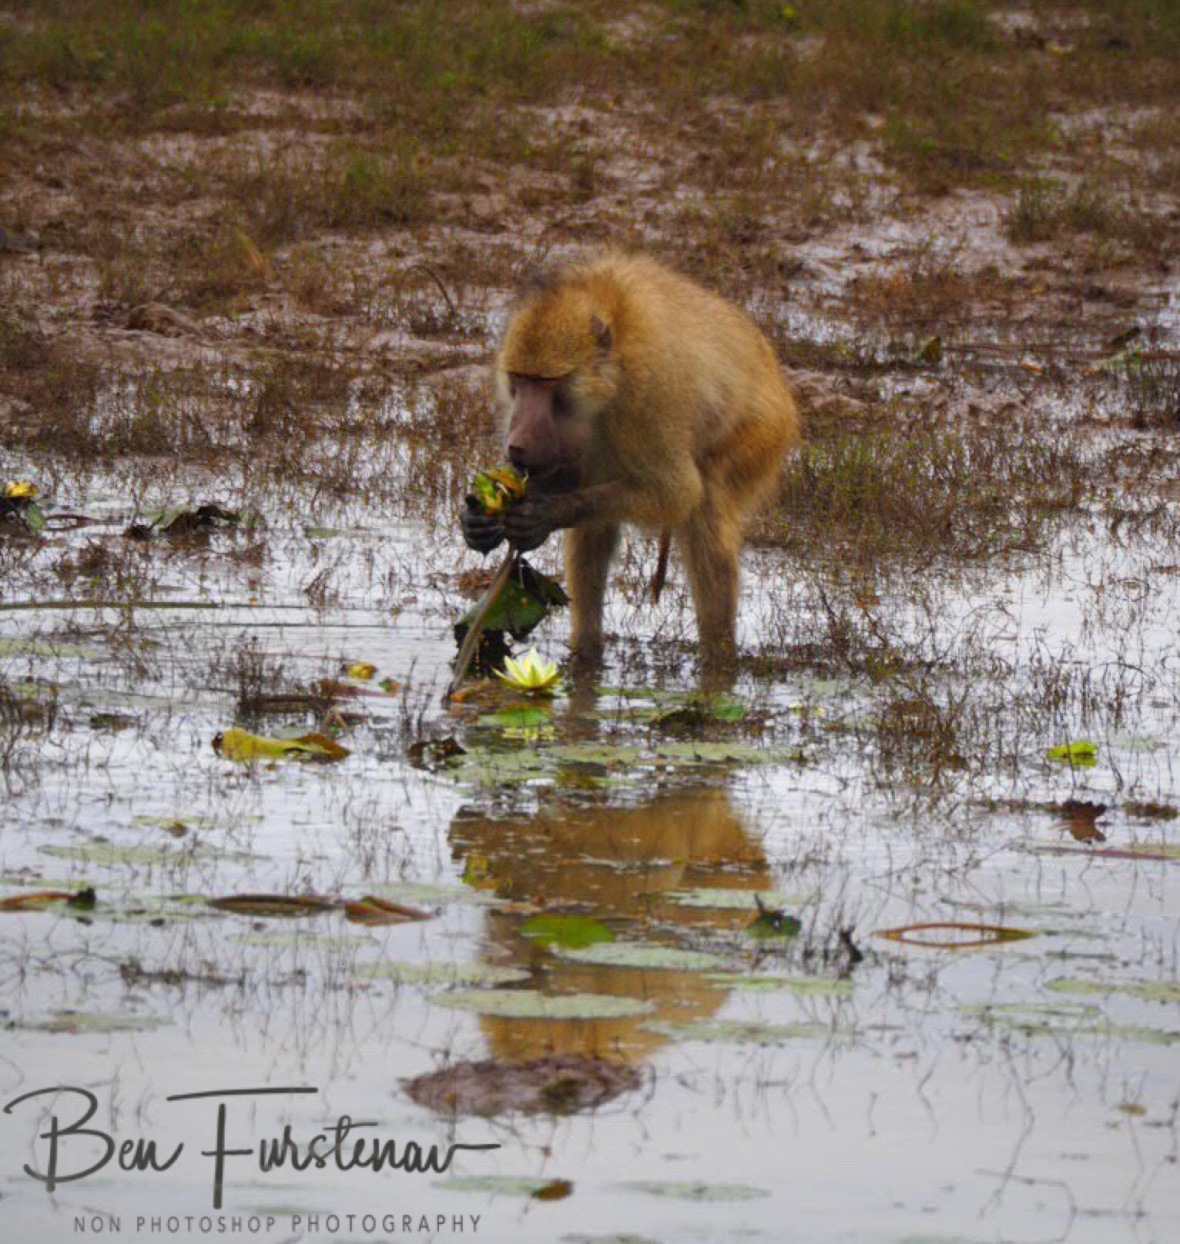 Digging up water lilies, South Luangwa National Park, Zambia